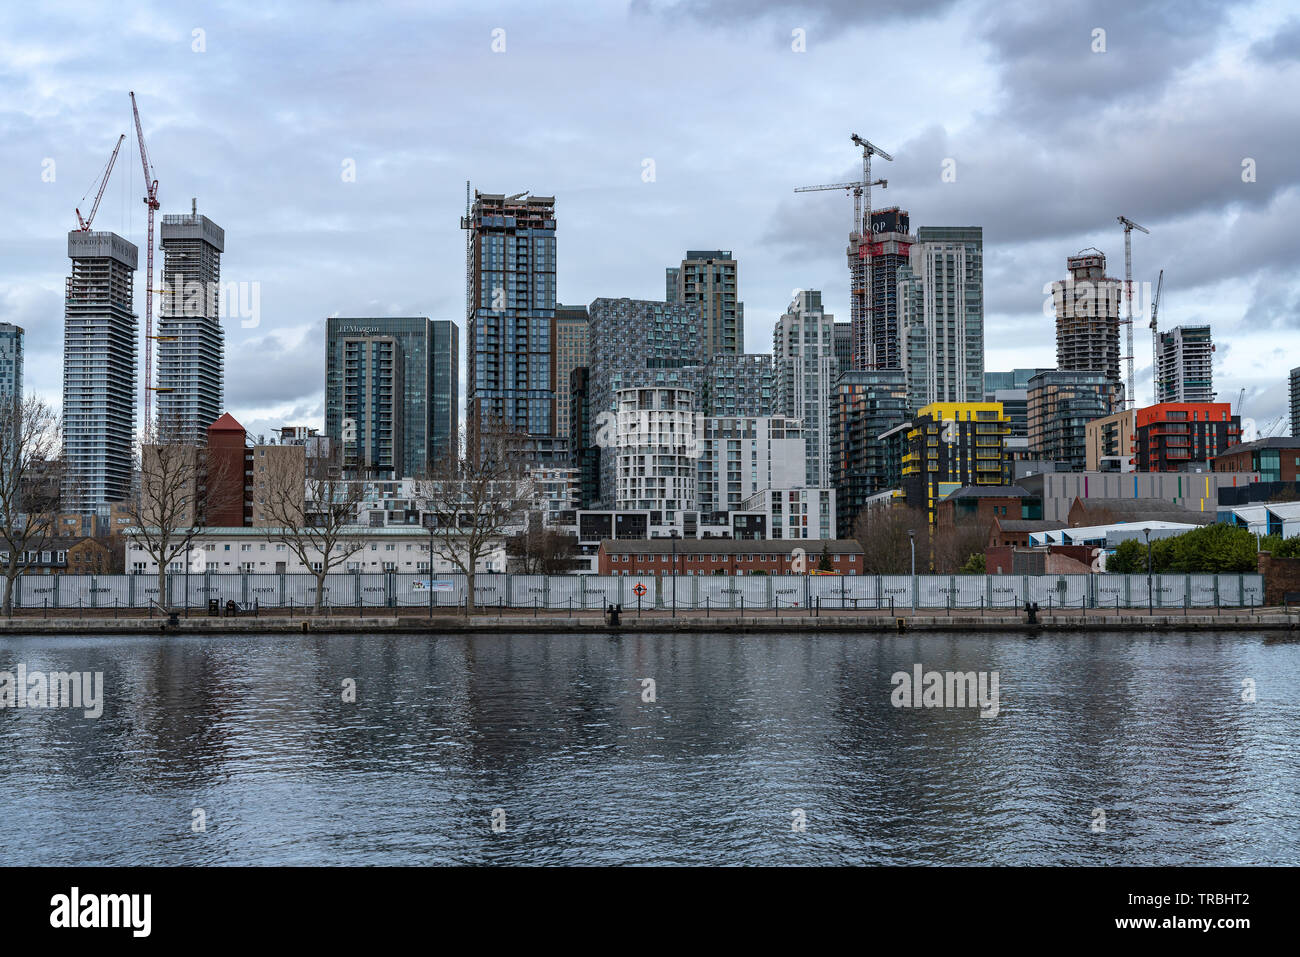 London, UK - March 05, 2019: New homes and developments, modern residential buildings on river Thames in Canary Wharf - Stock Image